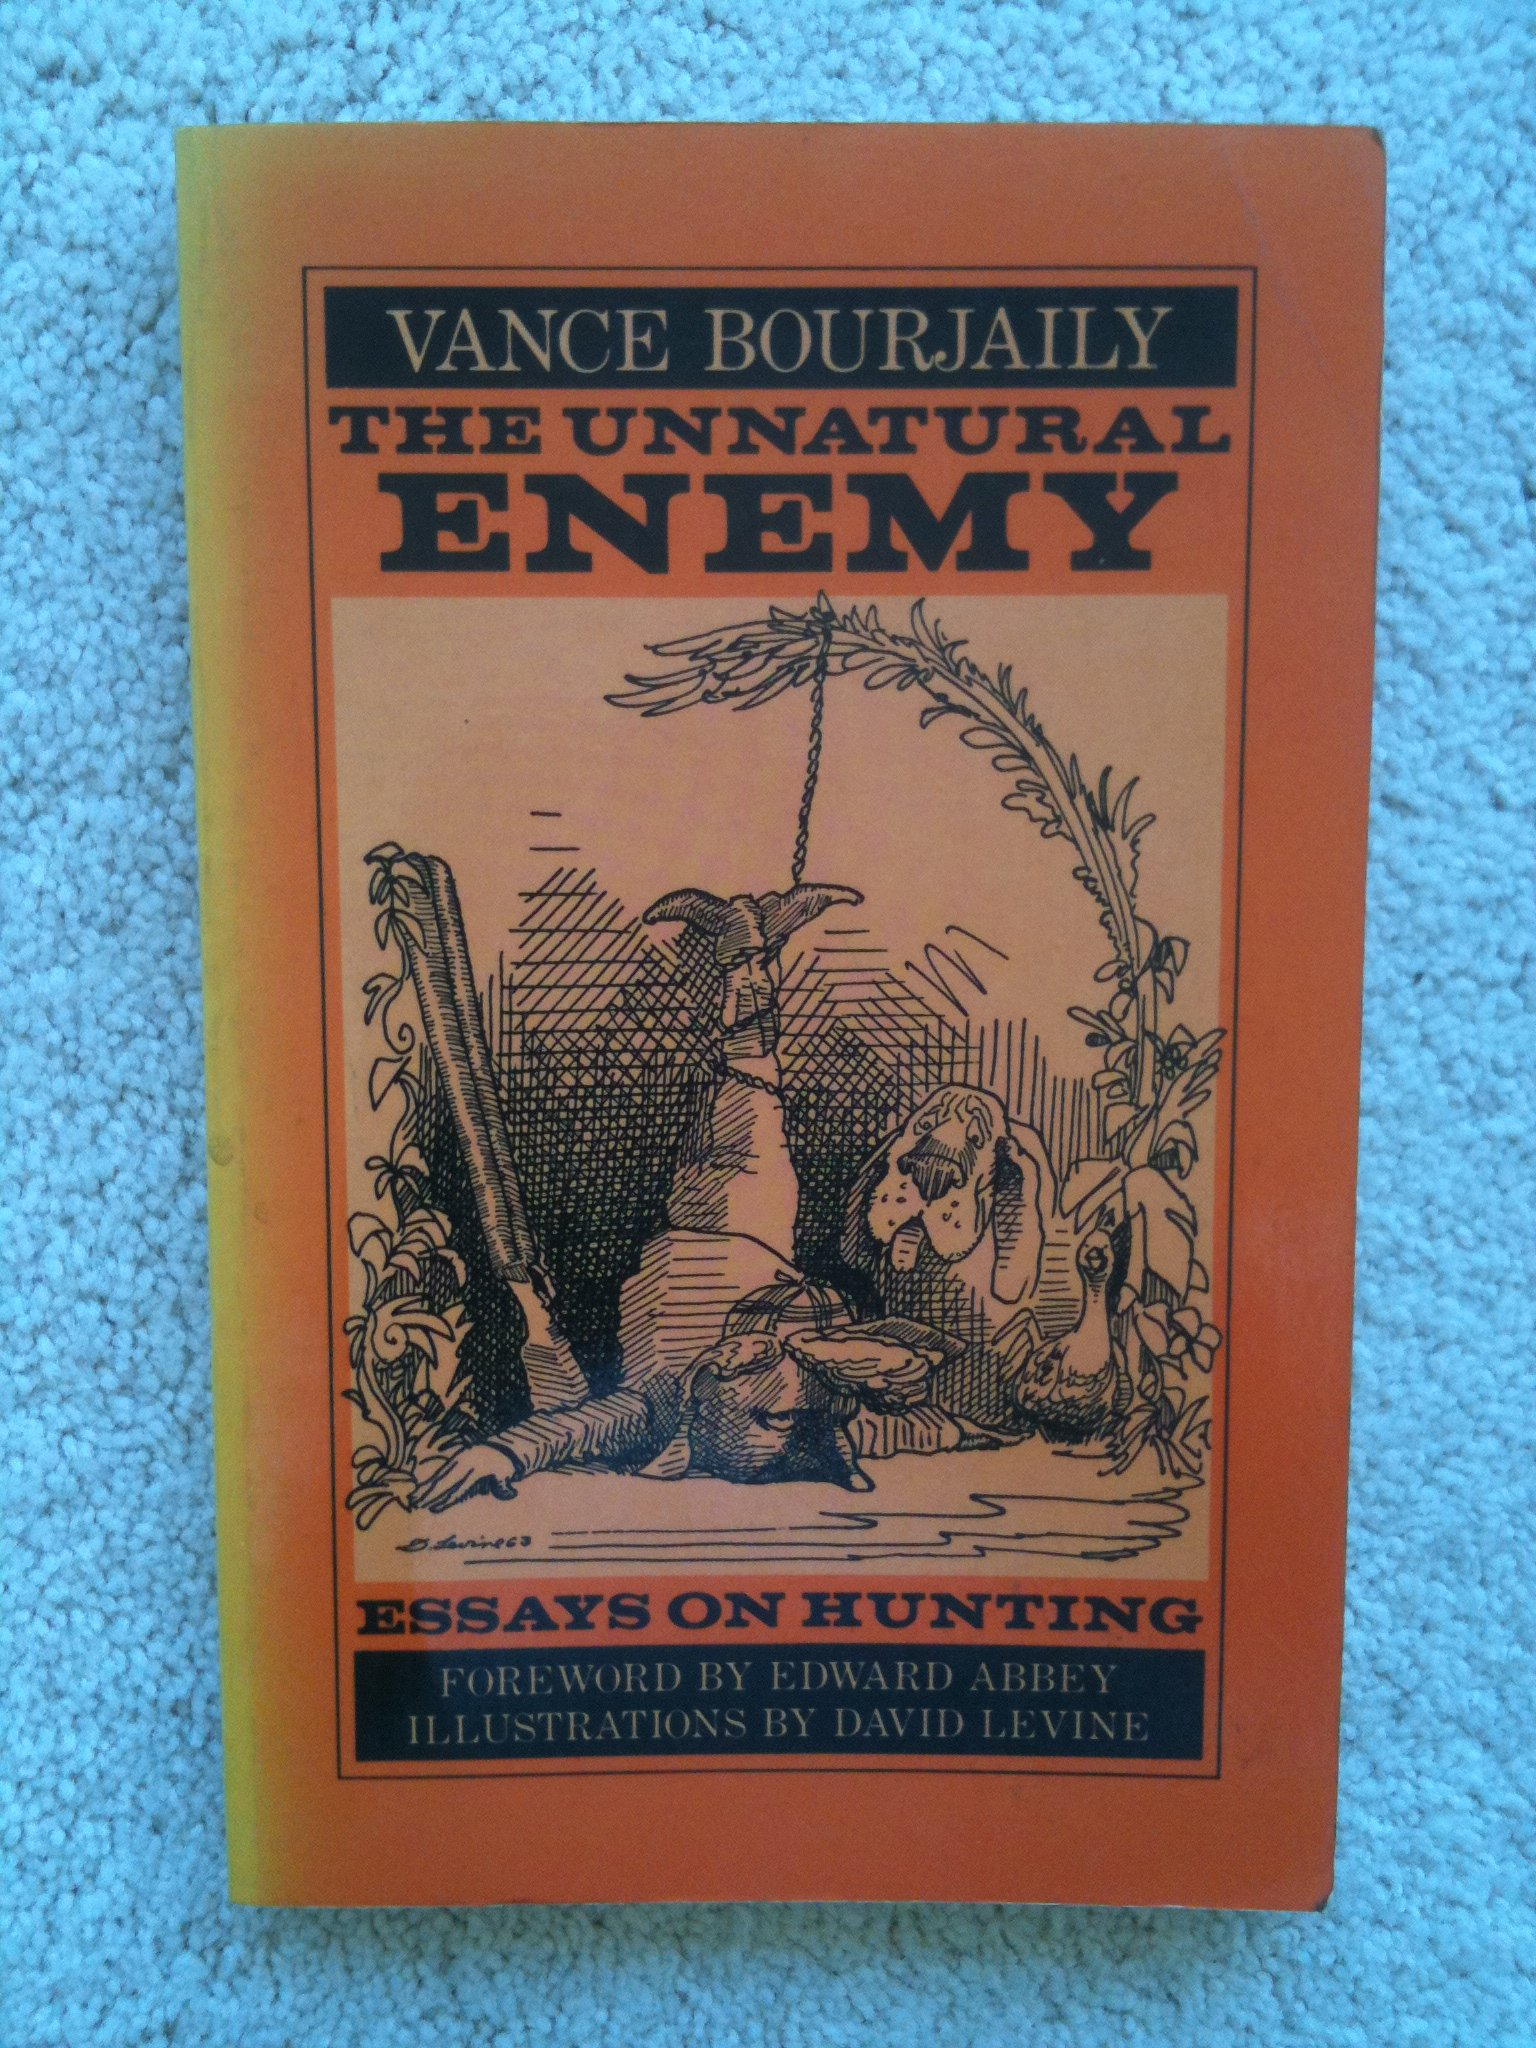 the unnatural enemy essays on hunting vance bourjaily the unnatural enemy essays on hunting vance bourjaily 9780816508846 com books